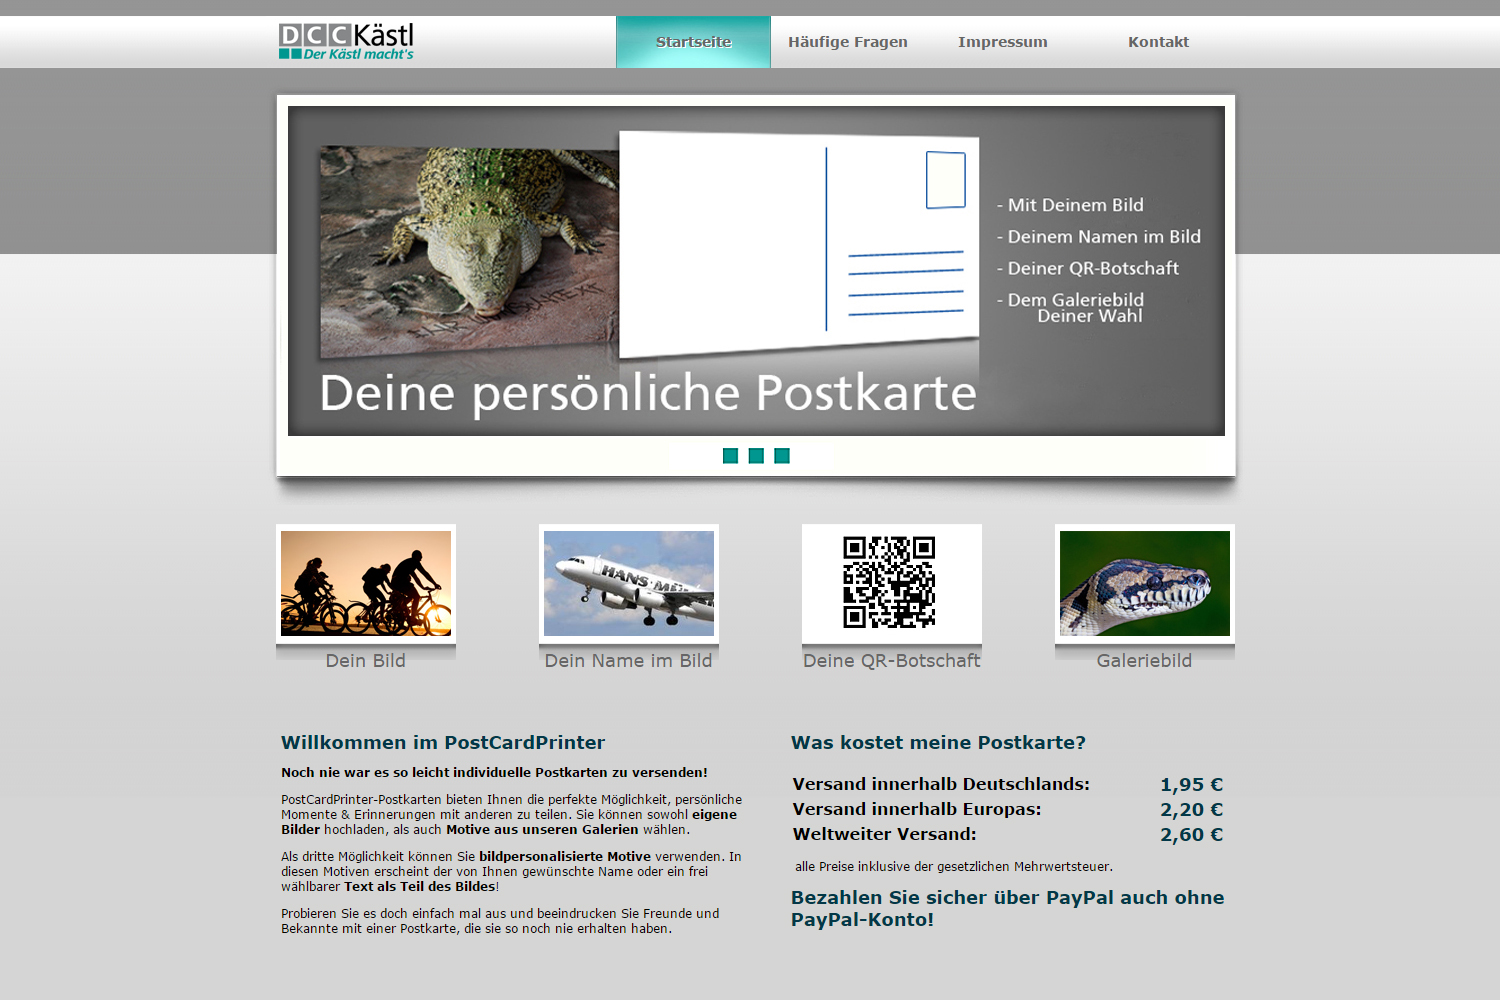 http://www.postcardprinter.de/